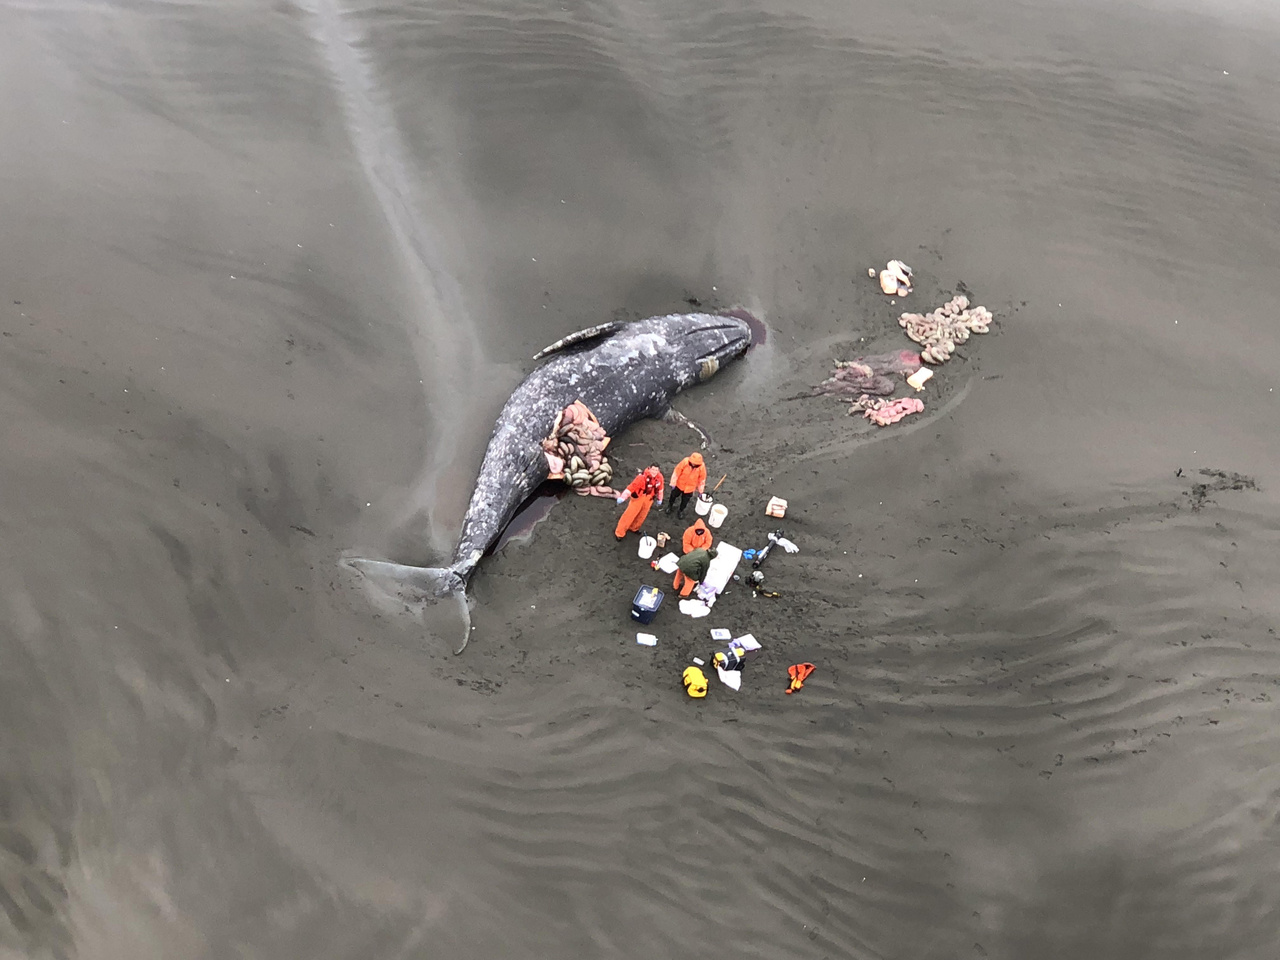 3000x2000 USCG aerial necropsy.jpg Aerial photo of necropsy team examining gray whale.